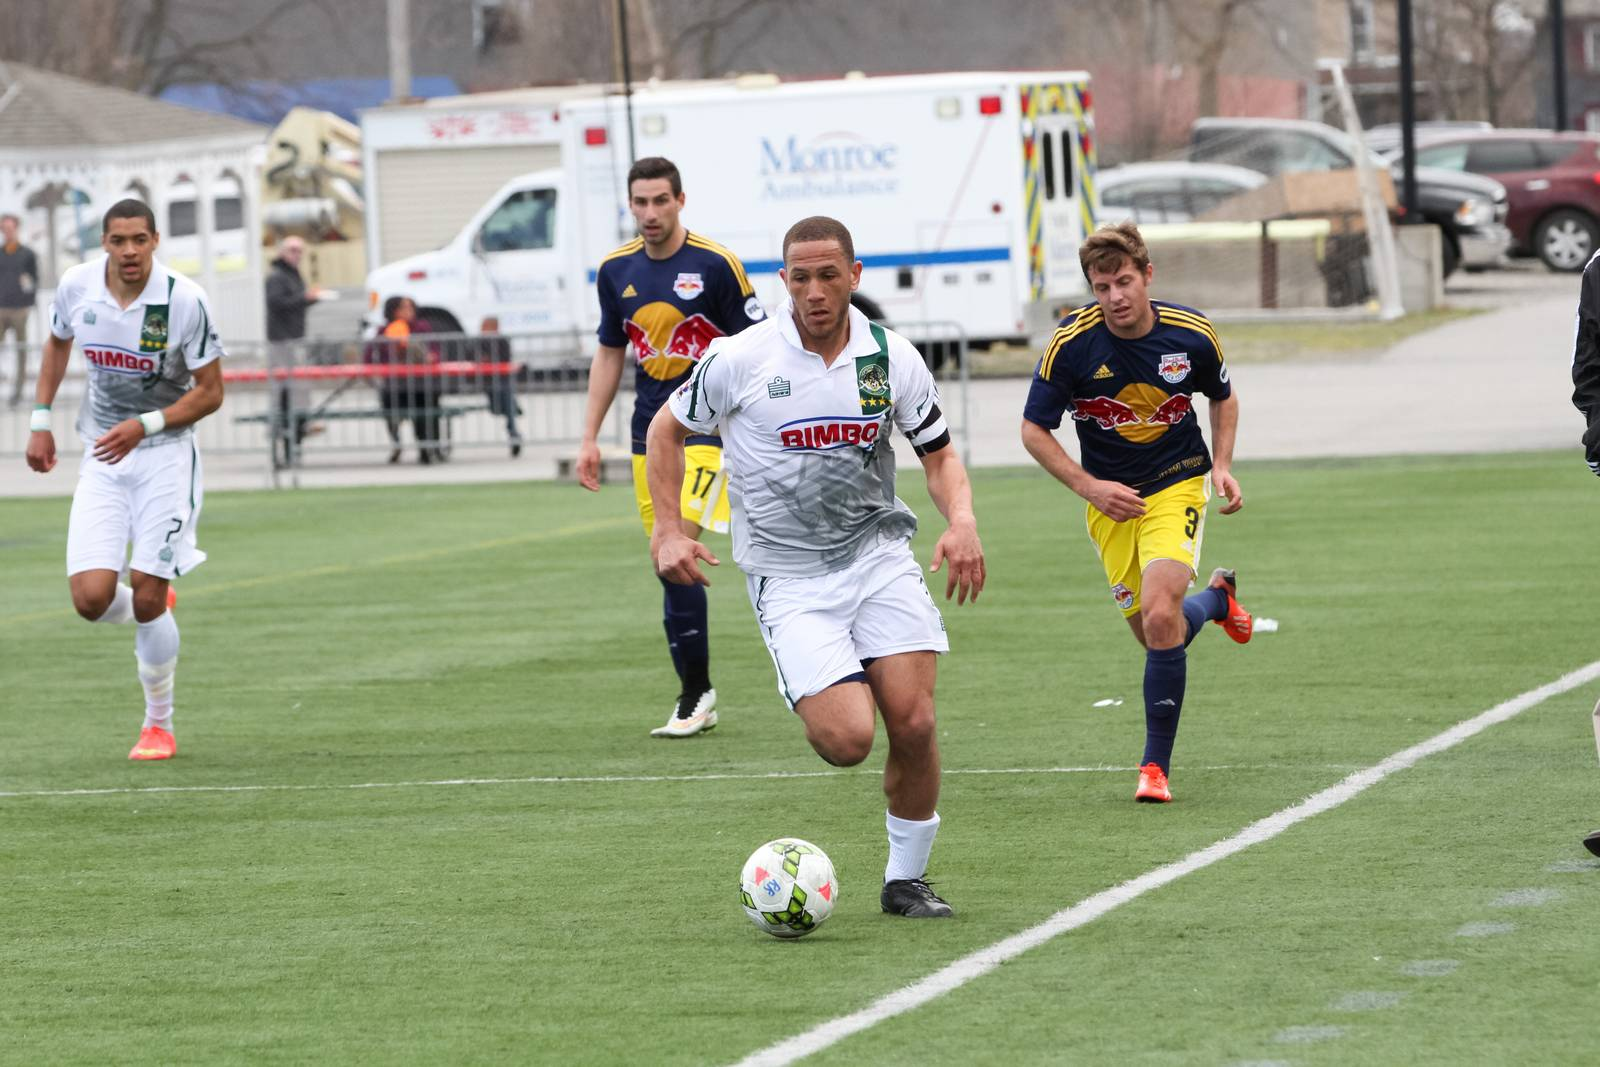 Rochester Rhinos are off to a hot start in the 2015 USL season